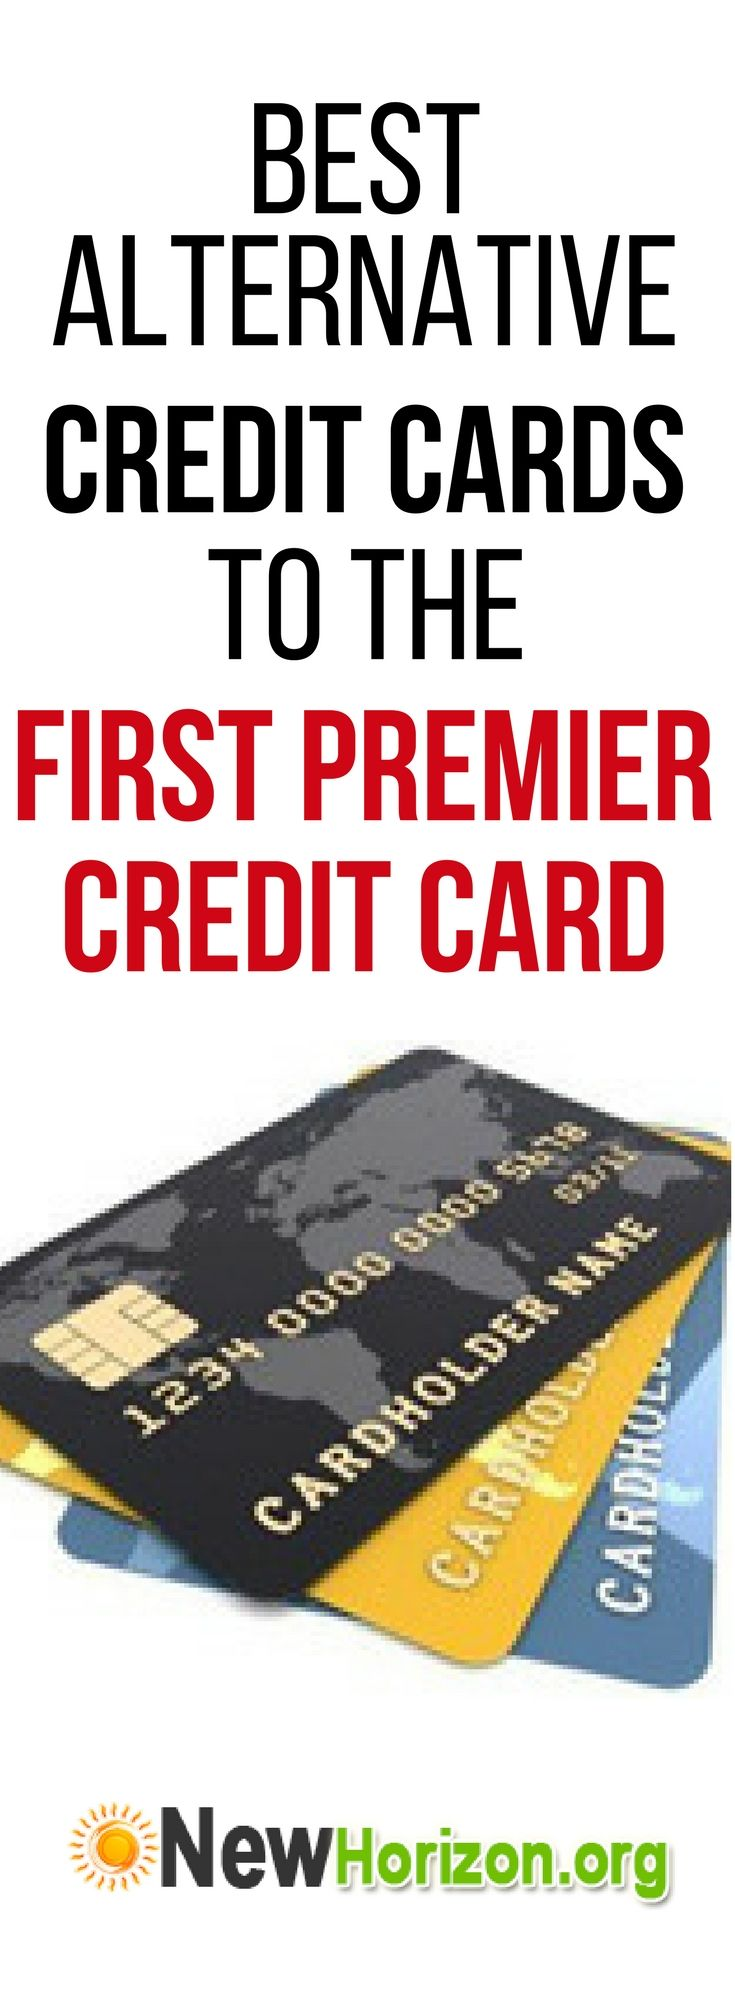 Best alternative credit cards to the First Premier Credit Card